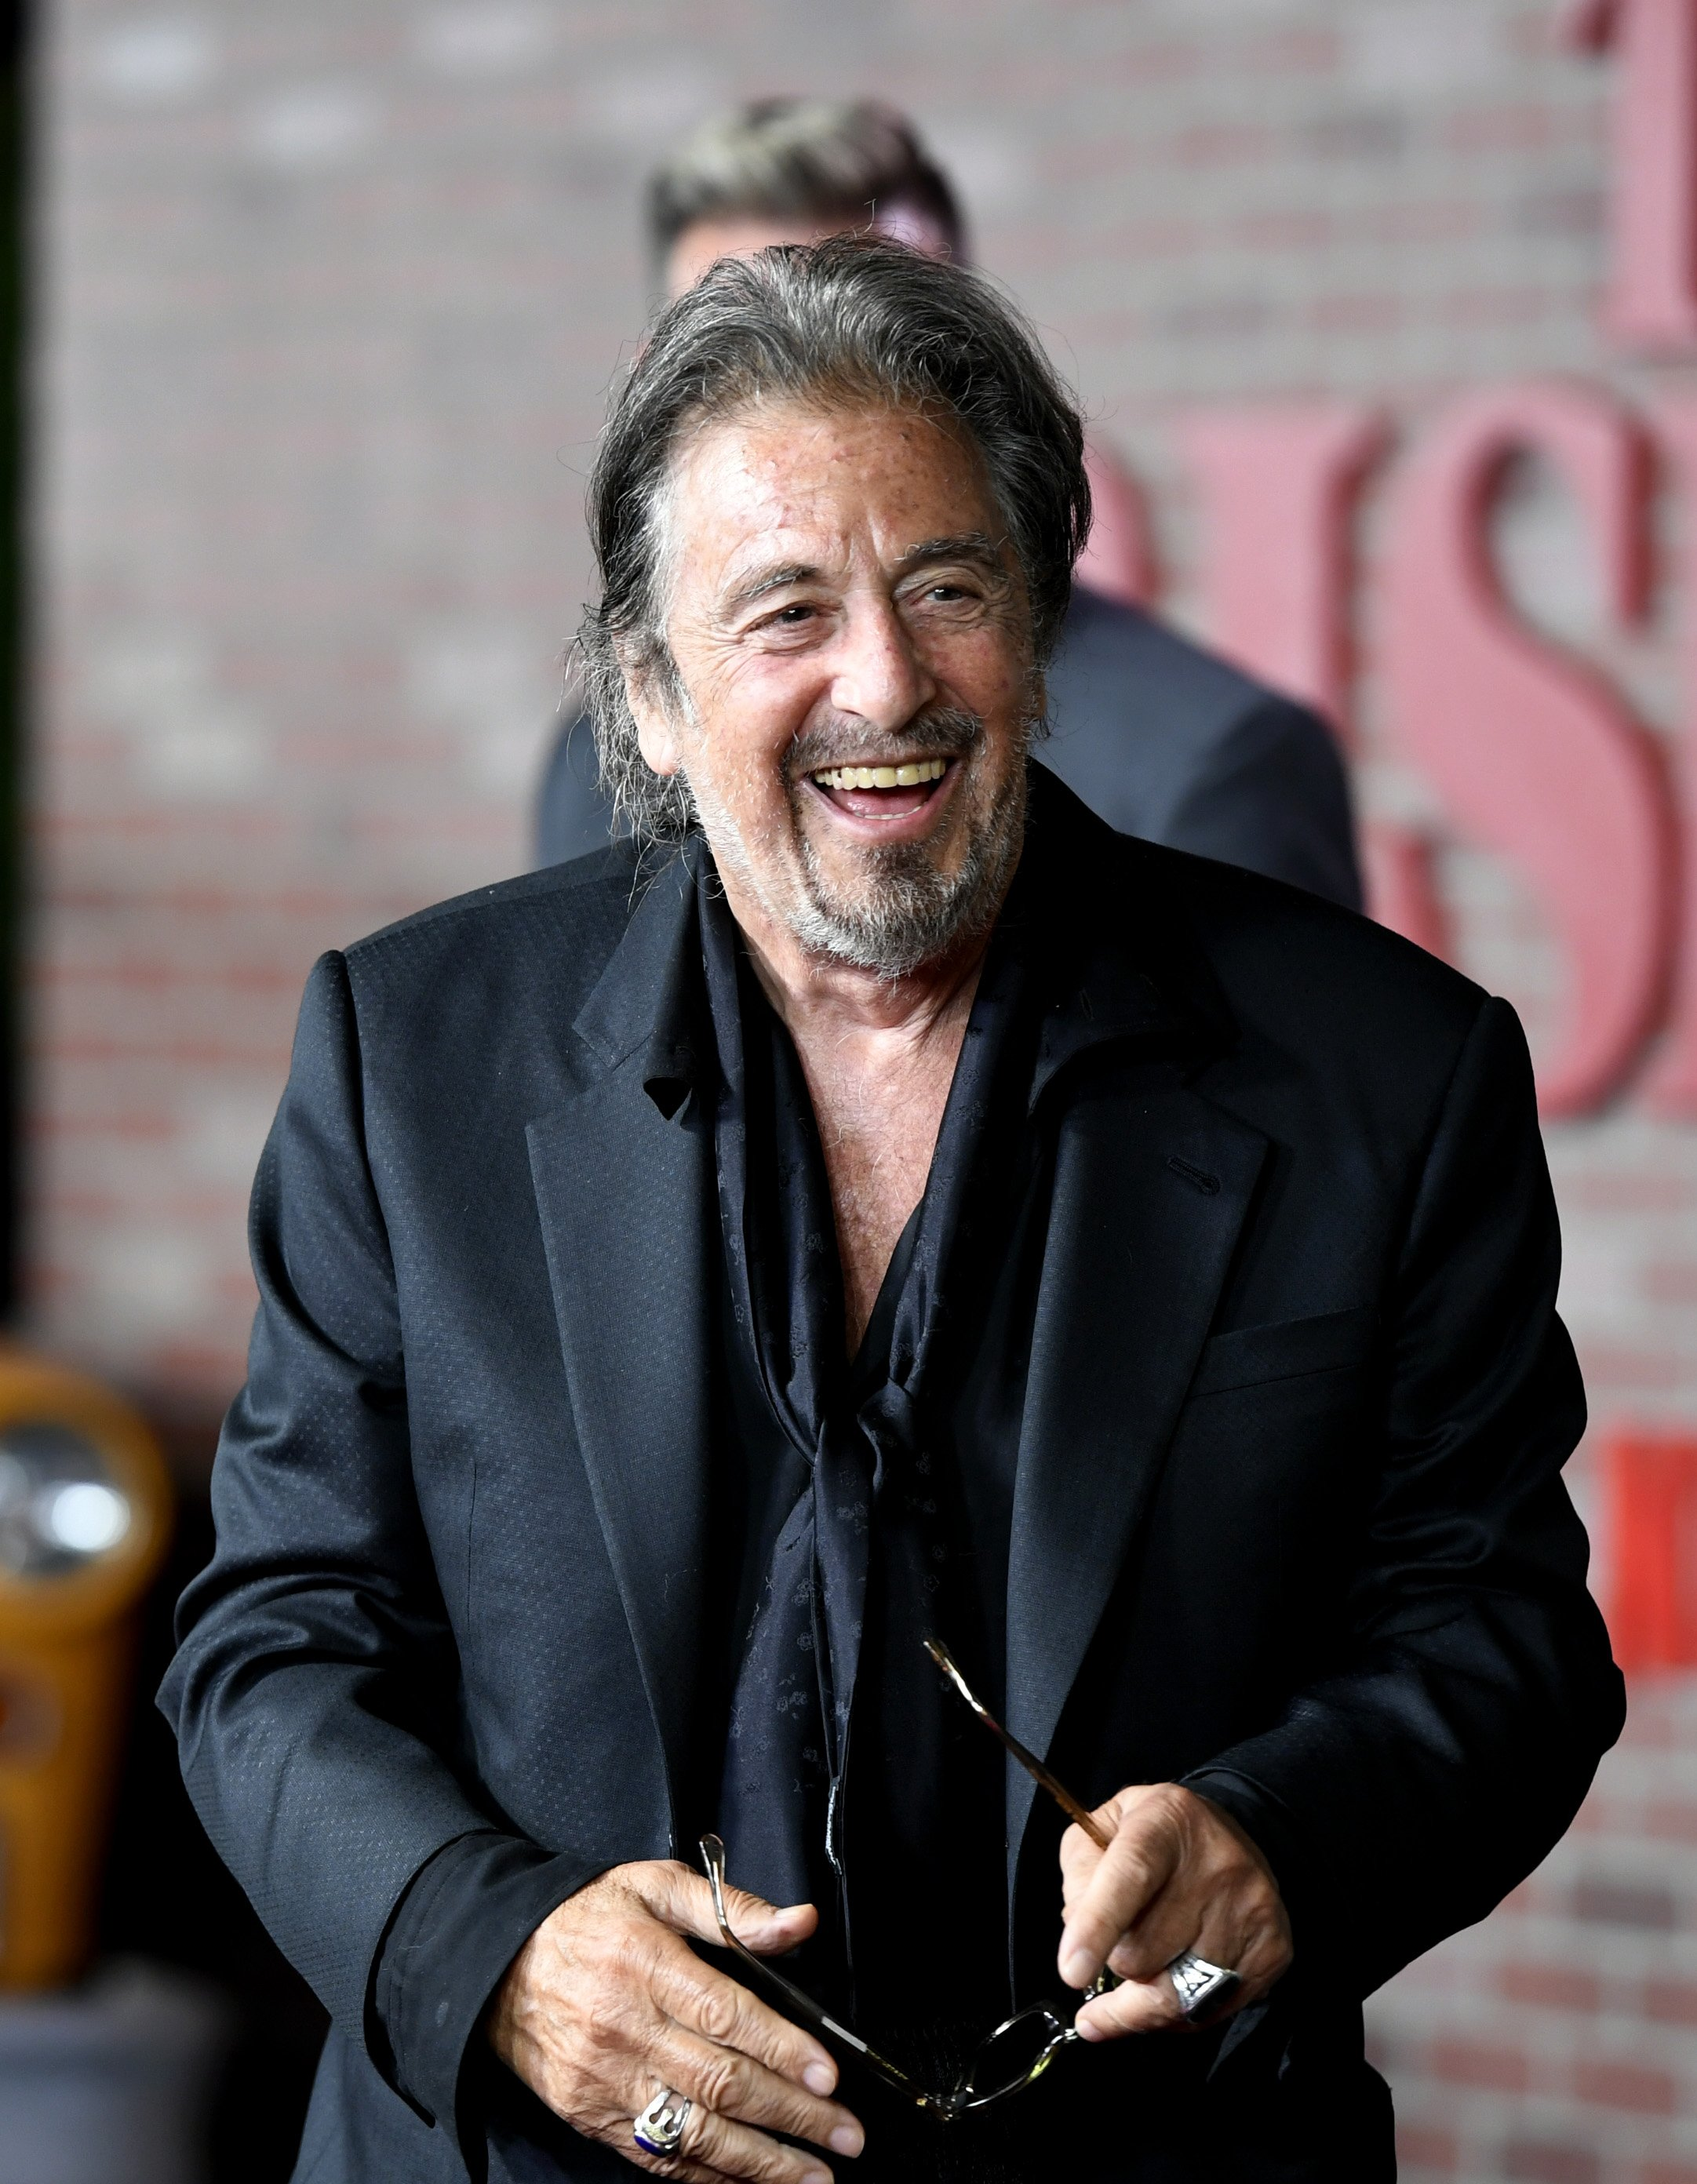 """Al Pacino attends the Premiere Of Netflix's """"The Irishman"""" at TCL Chinese Theatre on October 24, 2019, in Hollywood, California. 